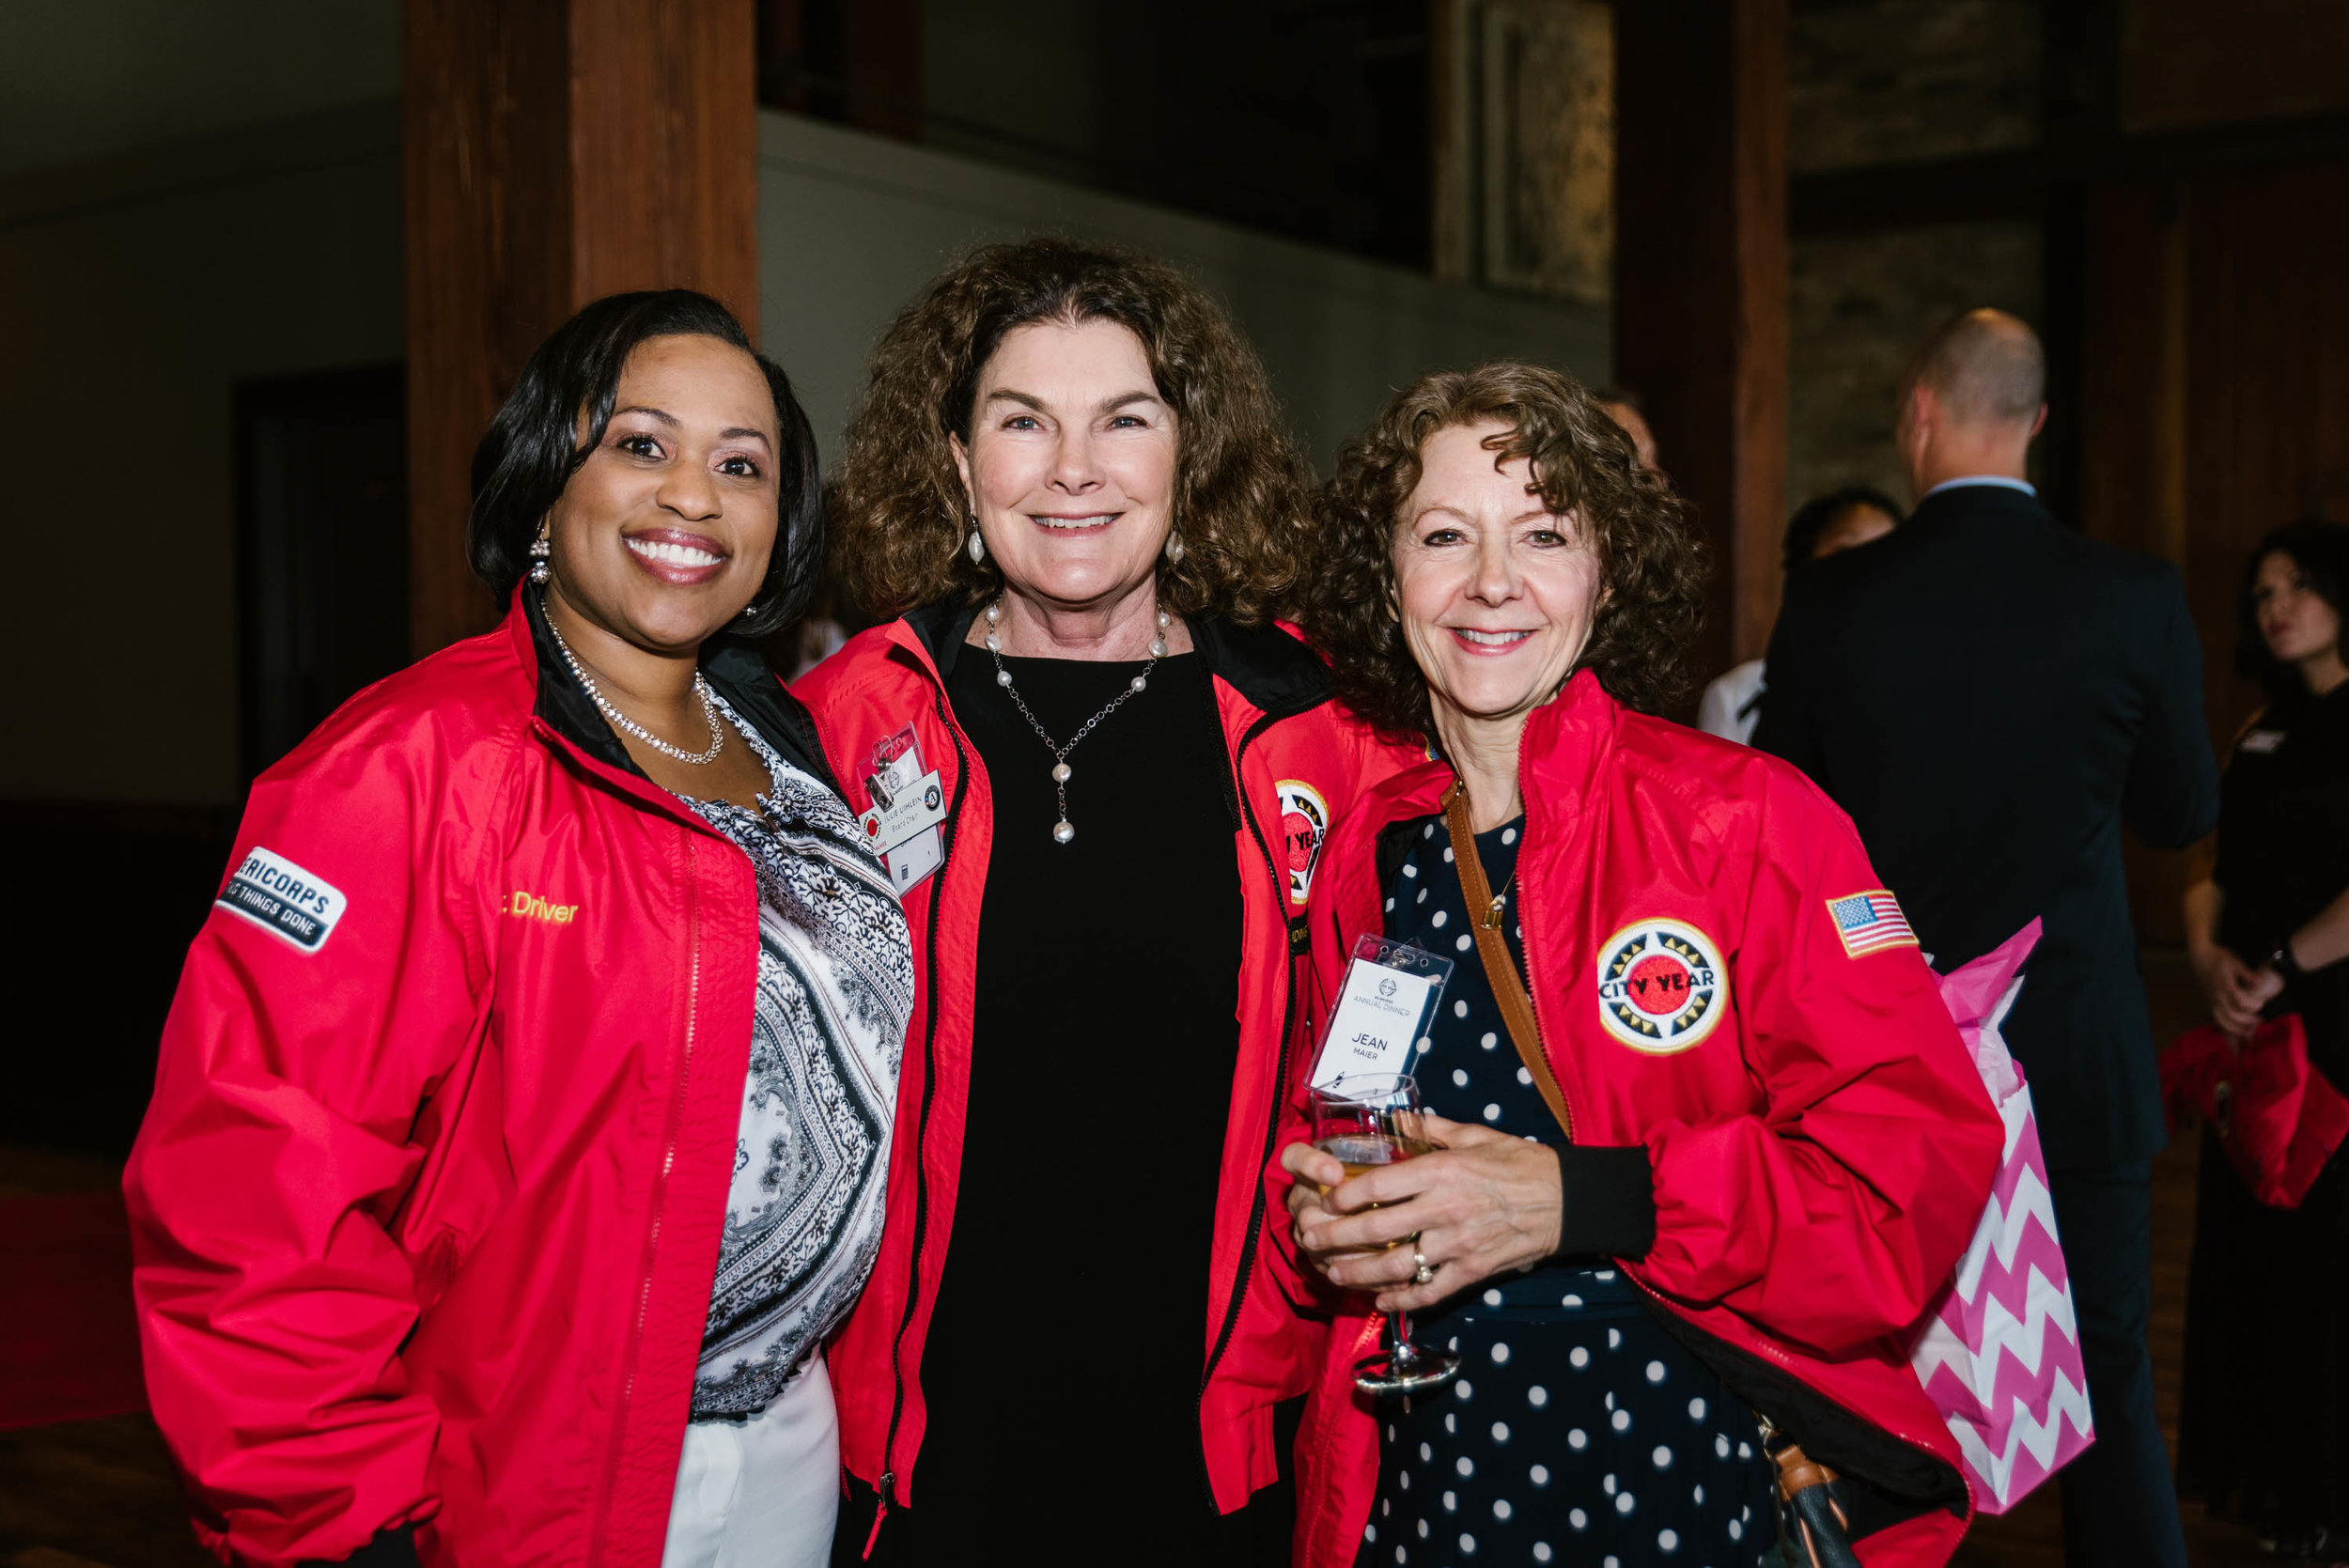 Milwaukee Public Schools Superintendent, Dr. Darienne Driver, City Year Milwaukee Board Chair, Julia A. Uihlein, and City Year Milwaukee Board Member, Jean Maier